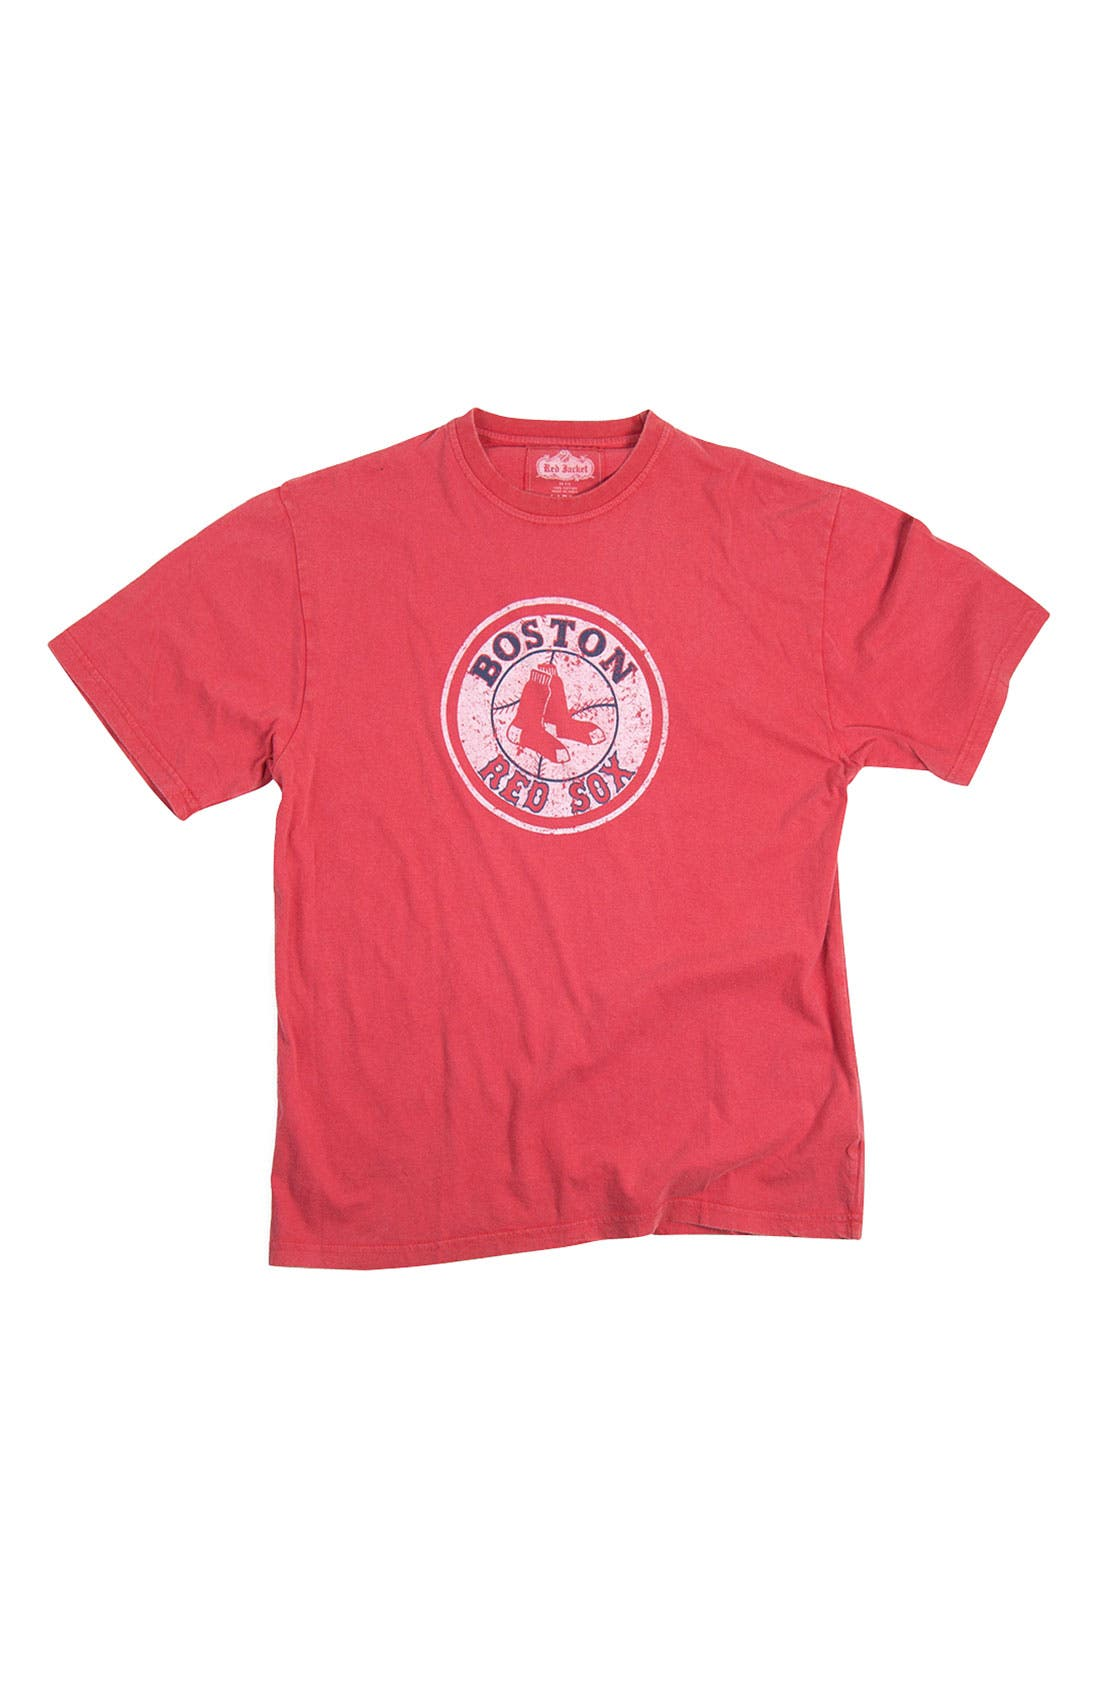 Main Image - Red Jacket 'Boston Red Sox' Trim Fit T-Shirt (Men)